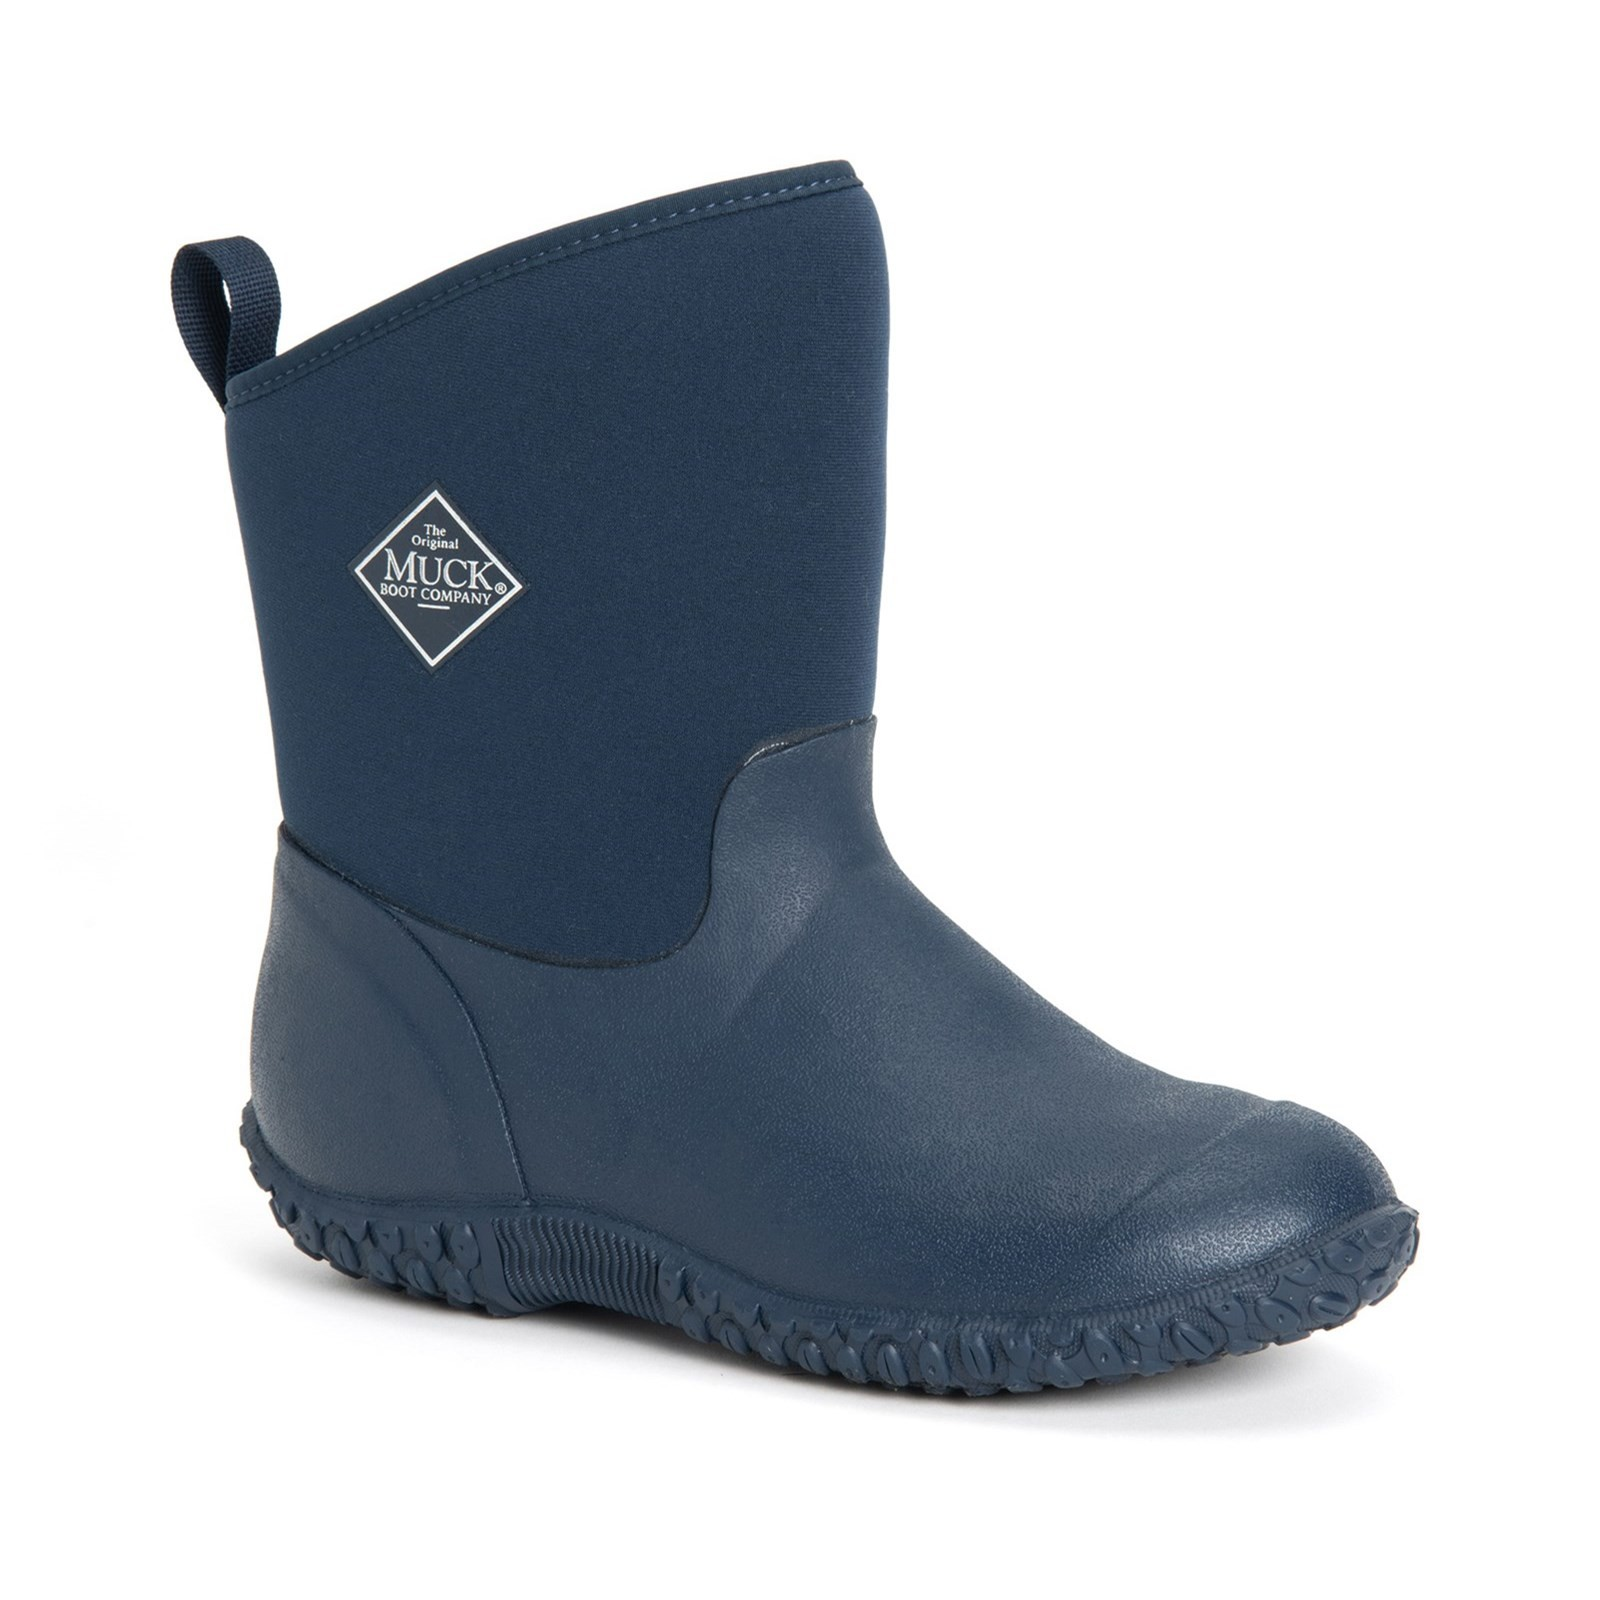 Muck Boot Muckster II Mid Shearling Size 5 UK